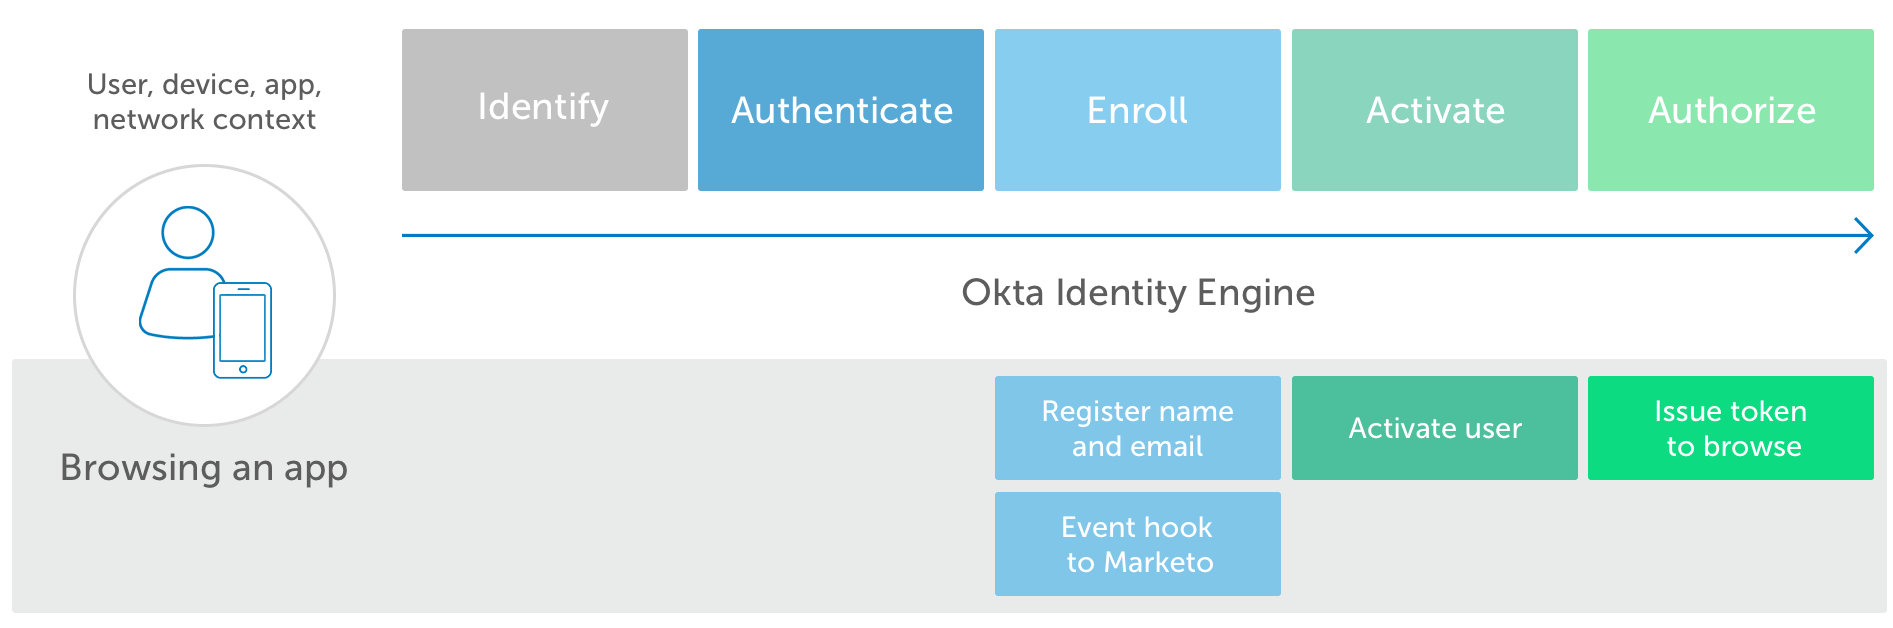 Okta Identity Engine Browsing app3